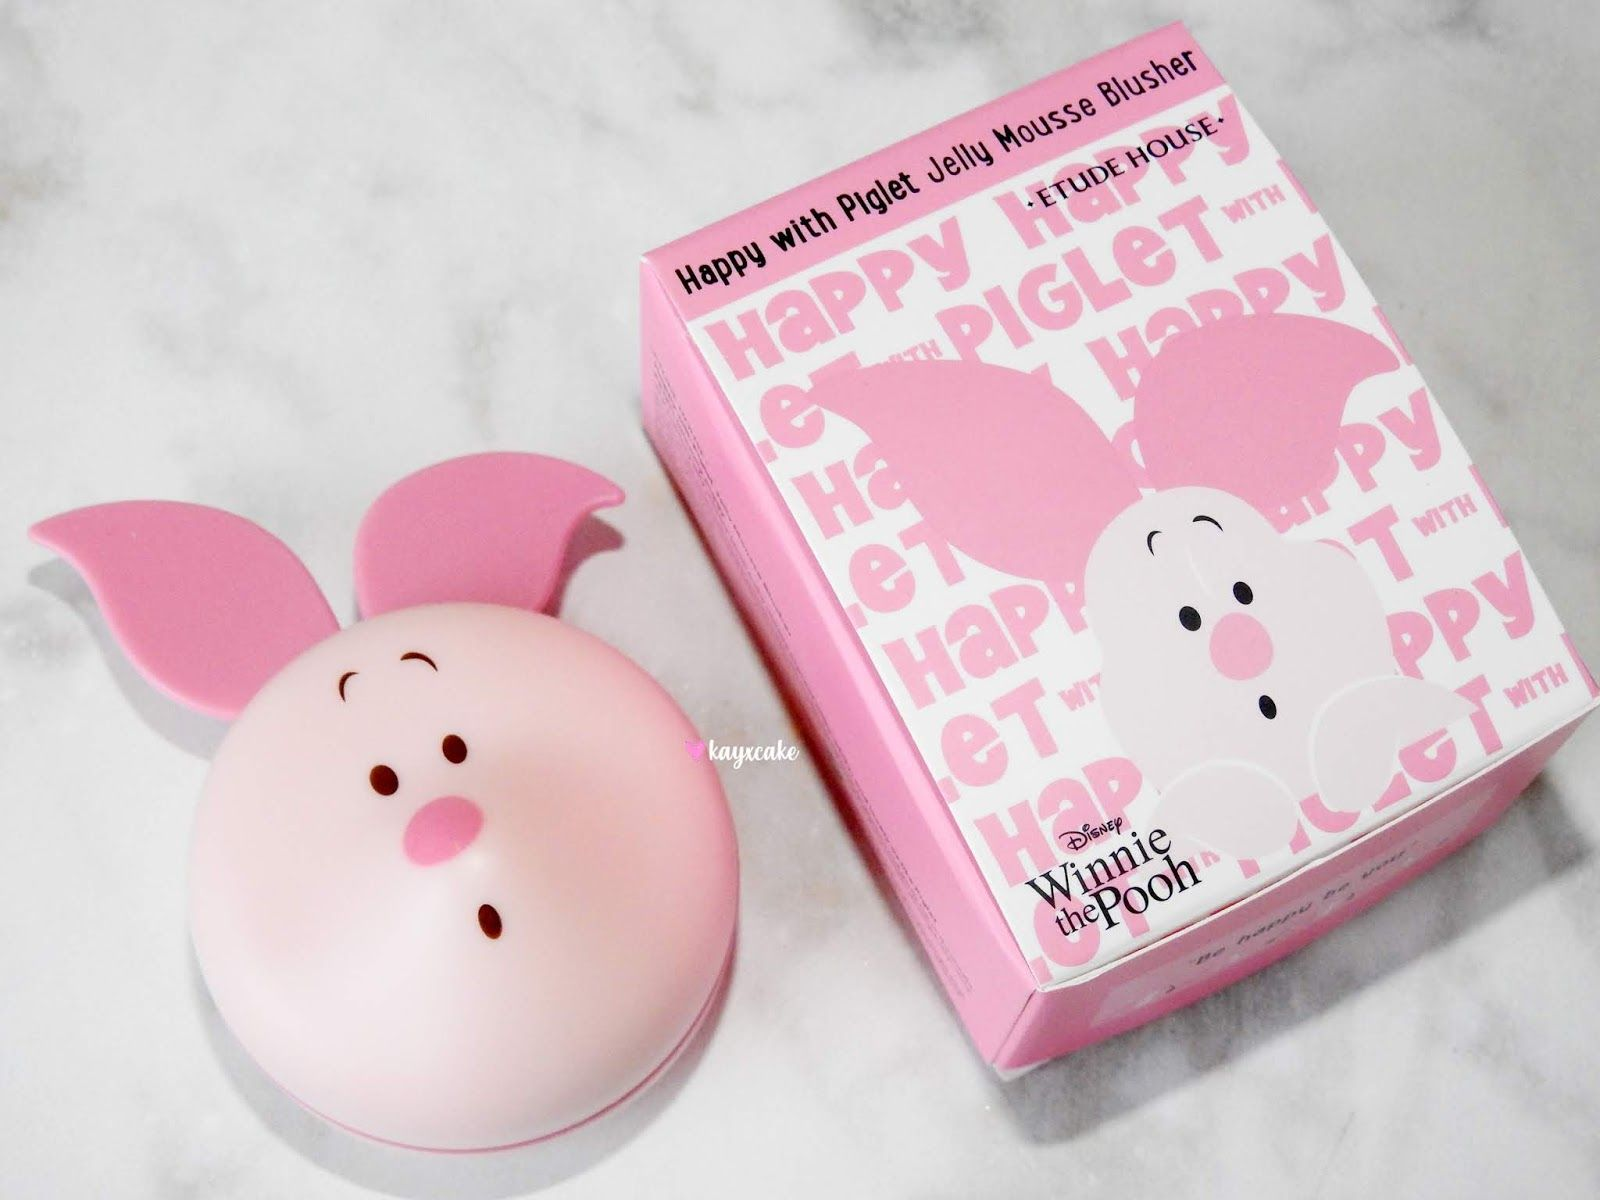 Etude House Happy With Piglet Collection Review Swatches Etude House Beauty Favorites Skin Brightening